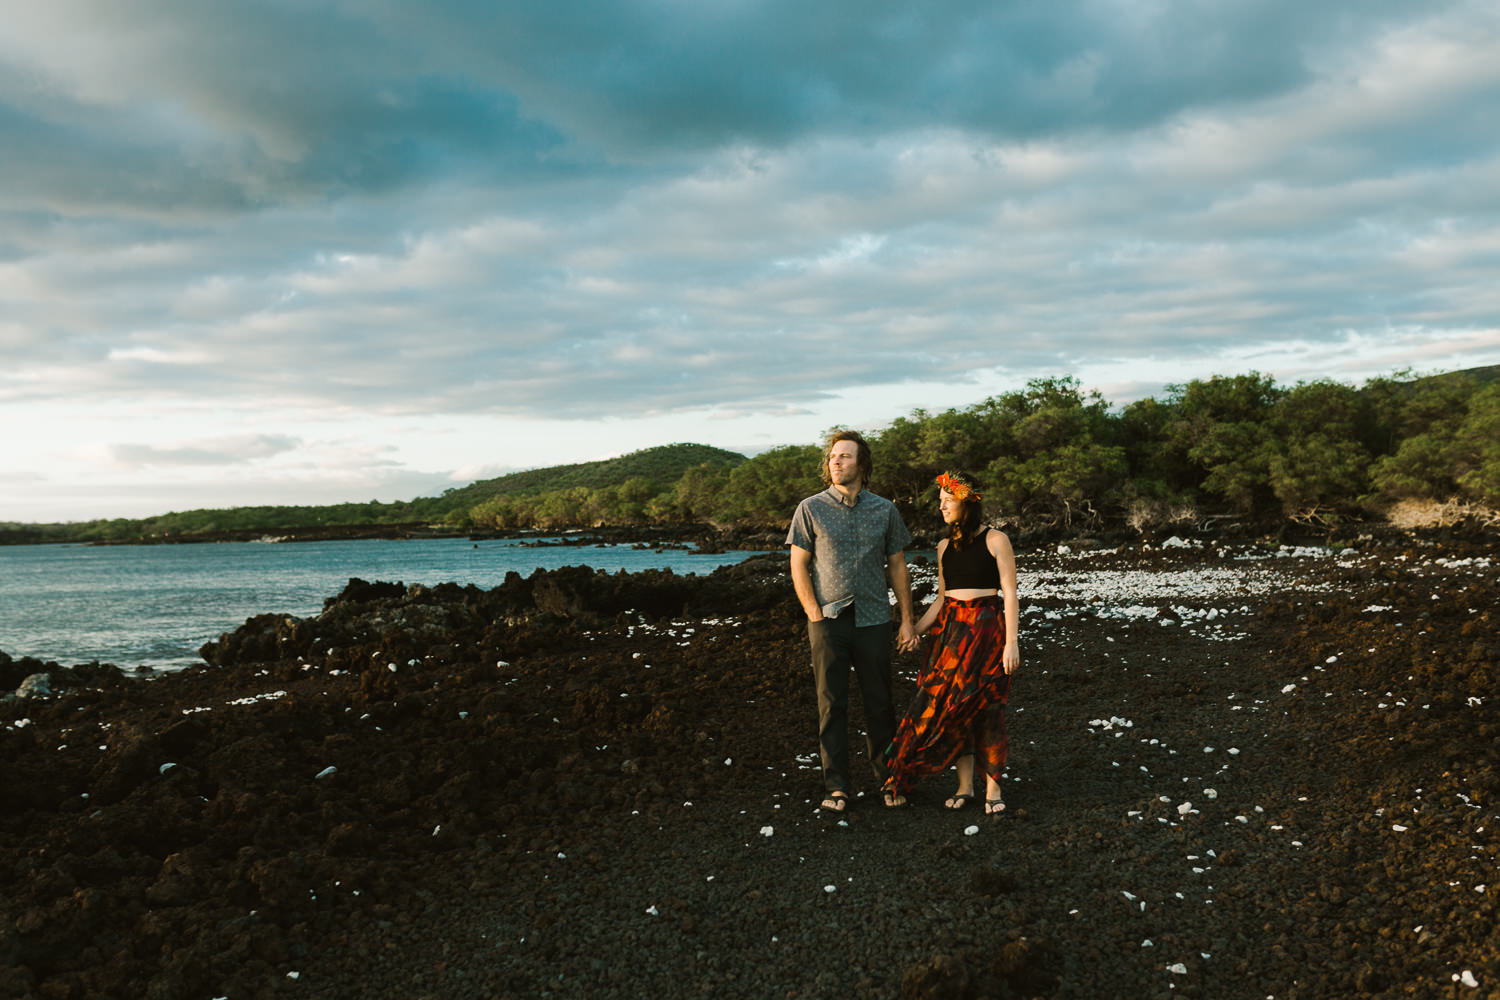 Maui Couples Adventure Photography Session